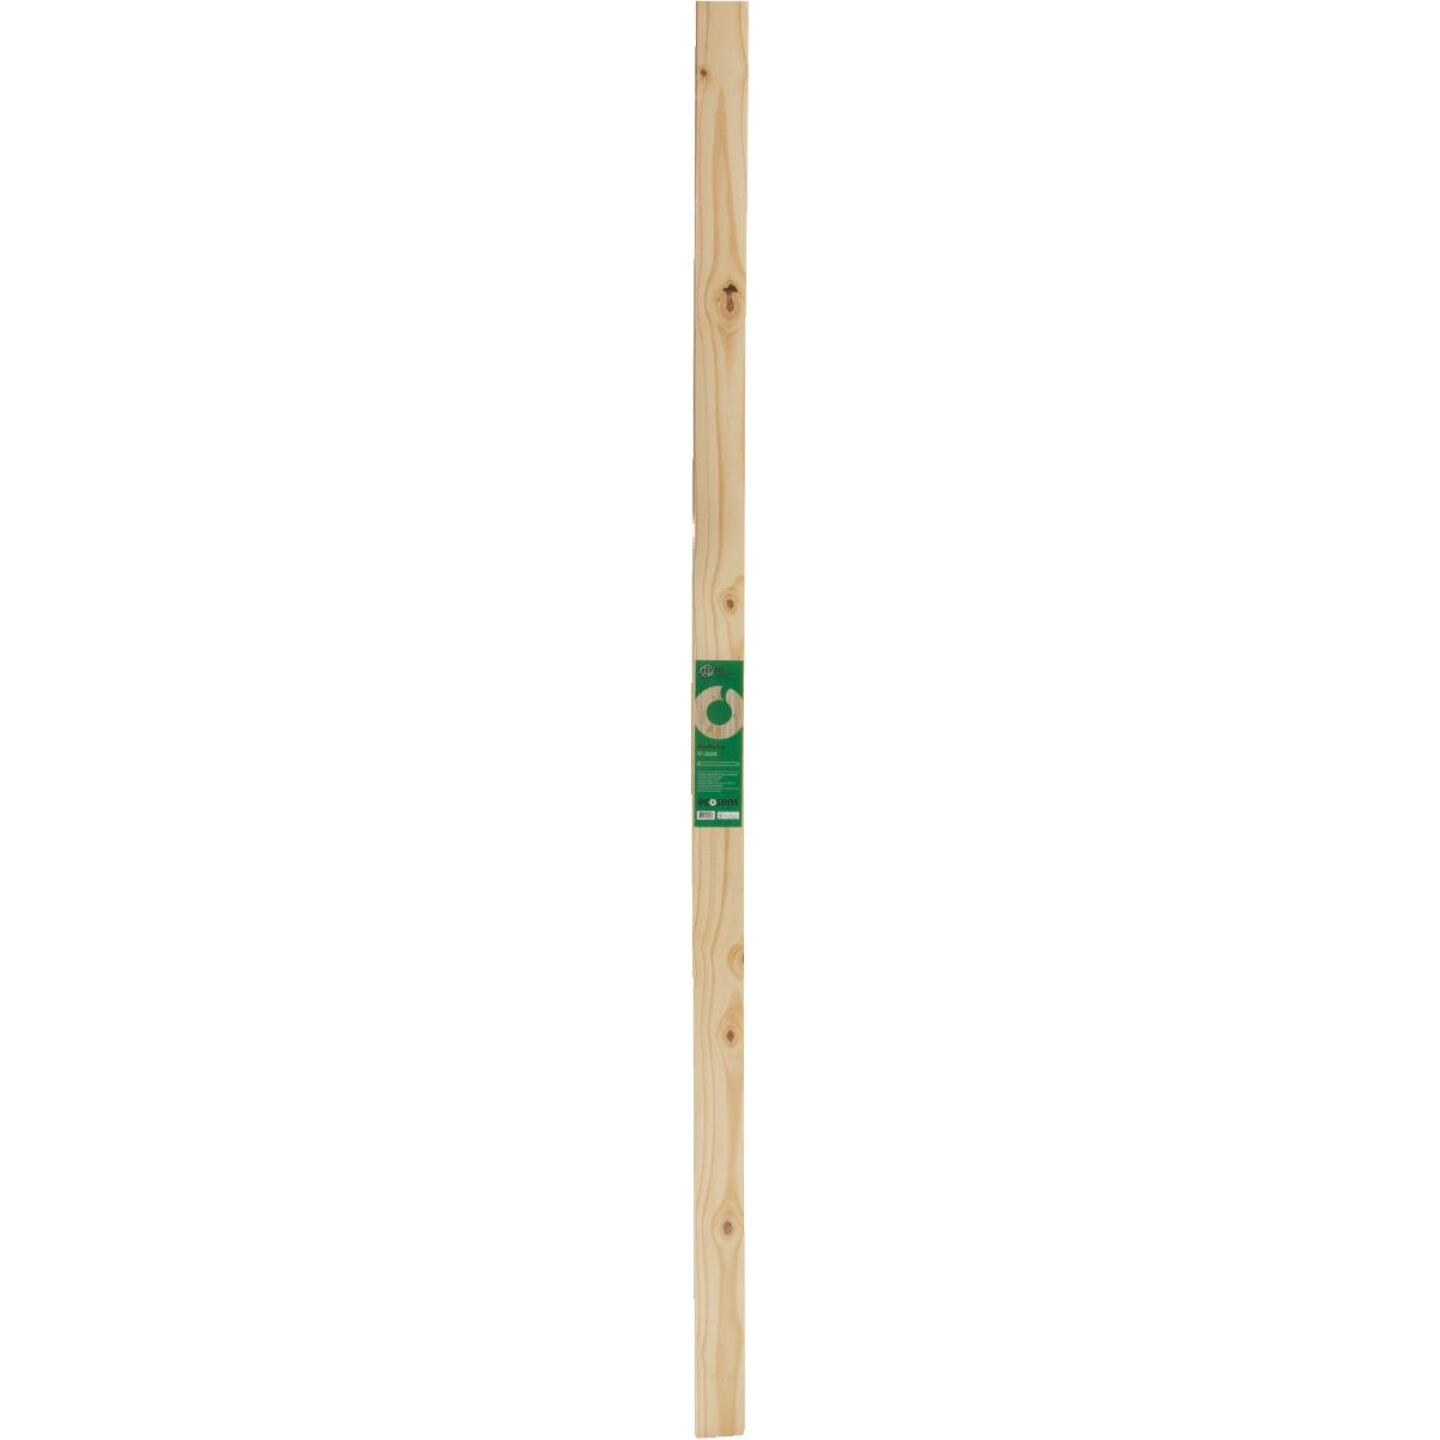 DPI 3-1/2 In. W. x 8 Ft. L. x 5/16 In. Thick Pine V-Edge Wall Plank (6-Pack) Image 2